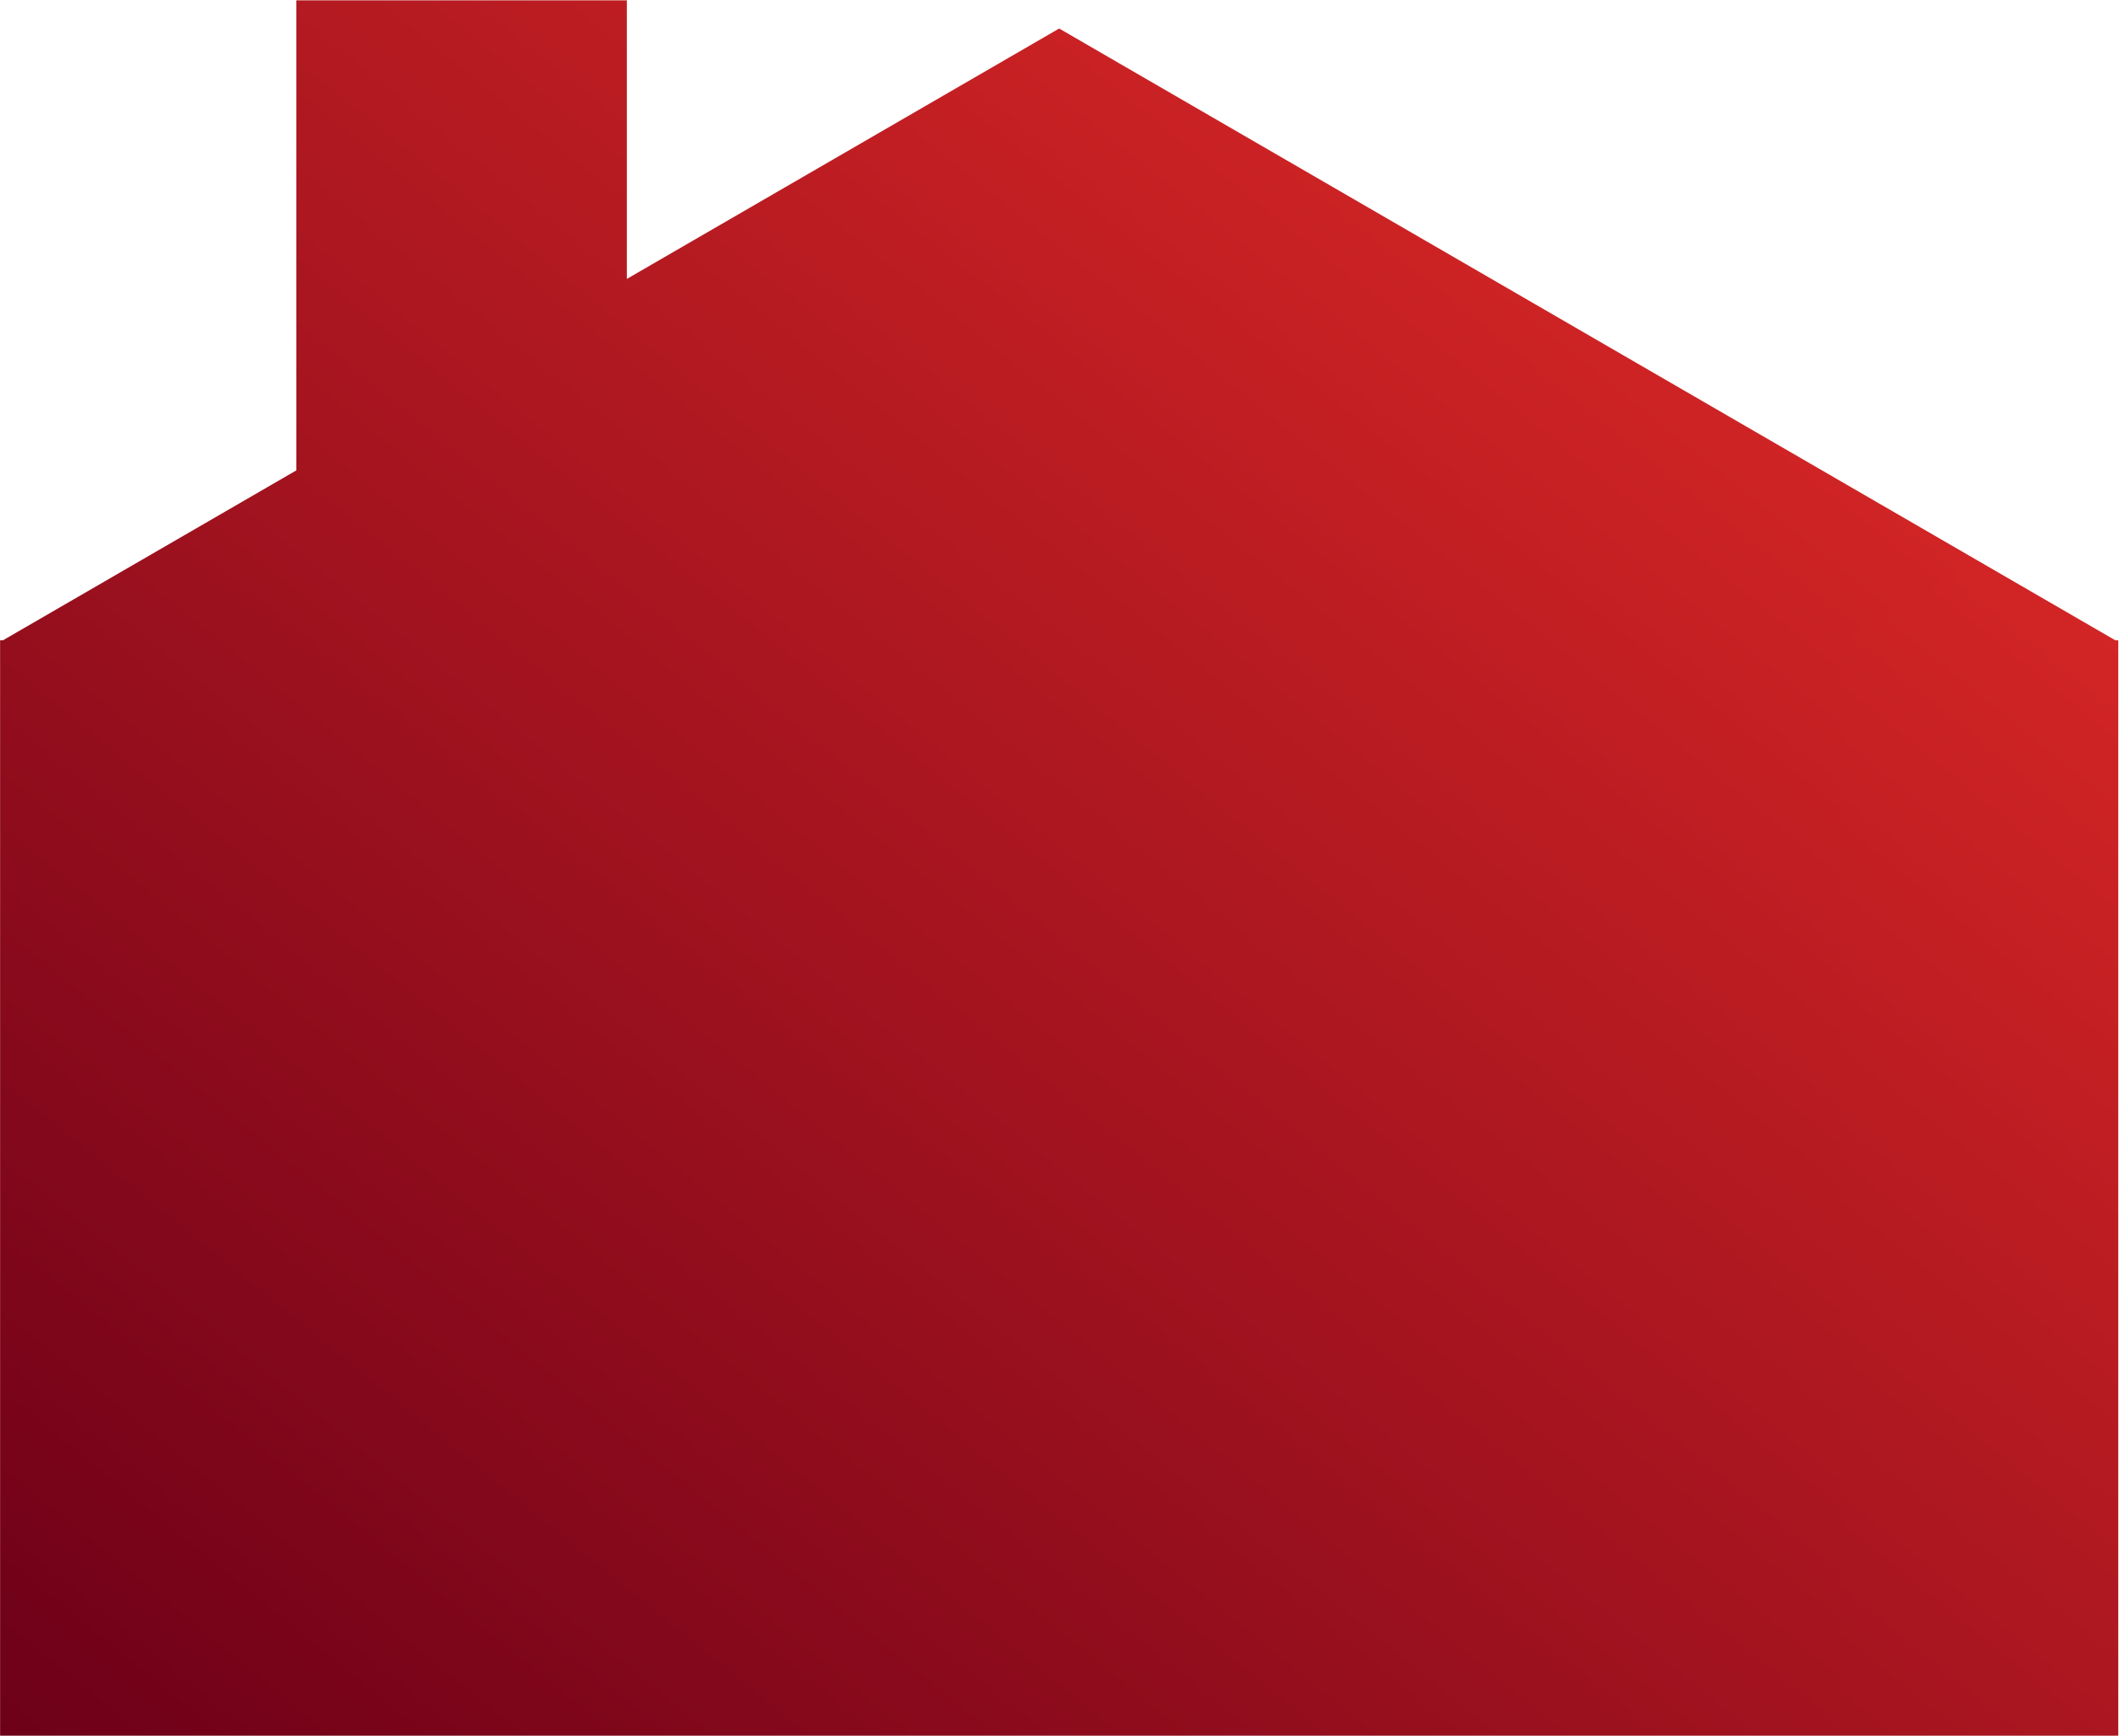 Color clipart maroon. Of a red house